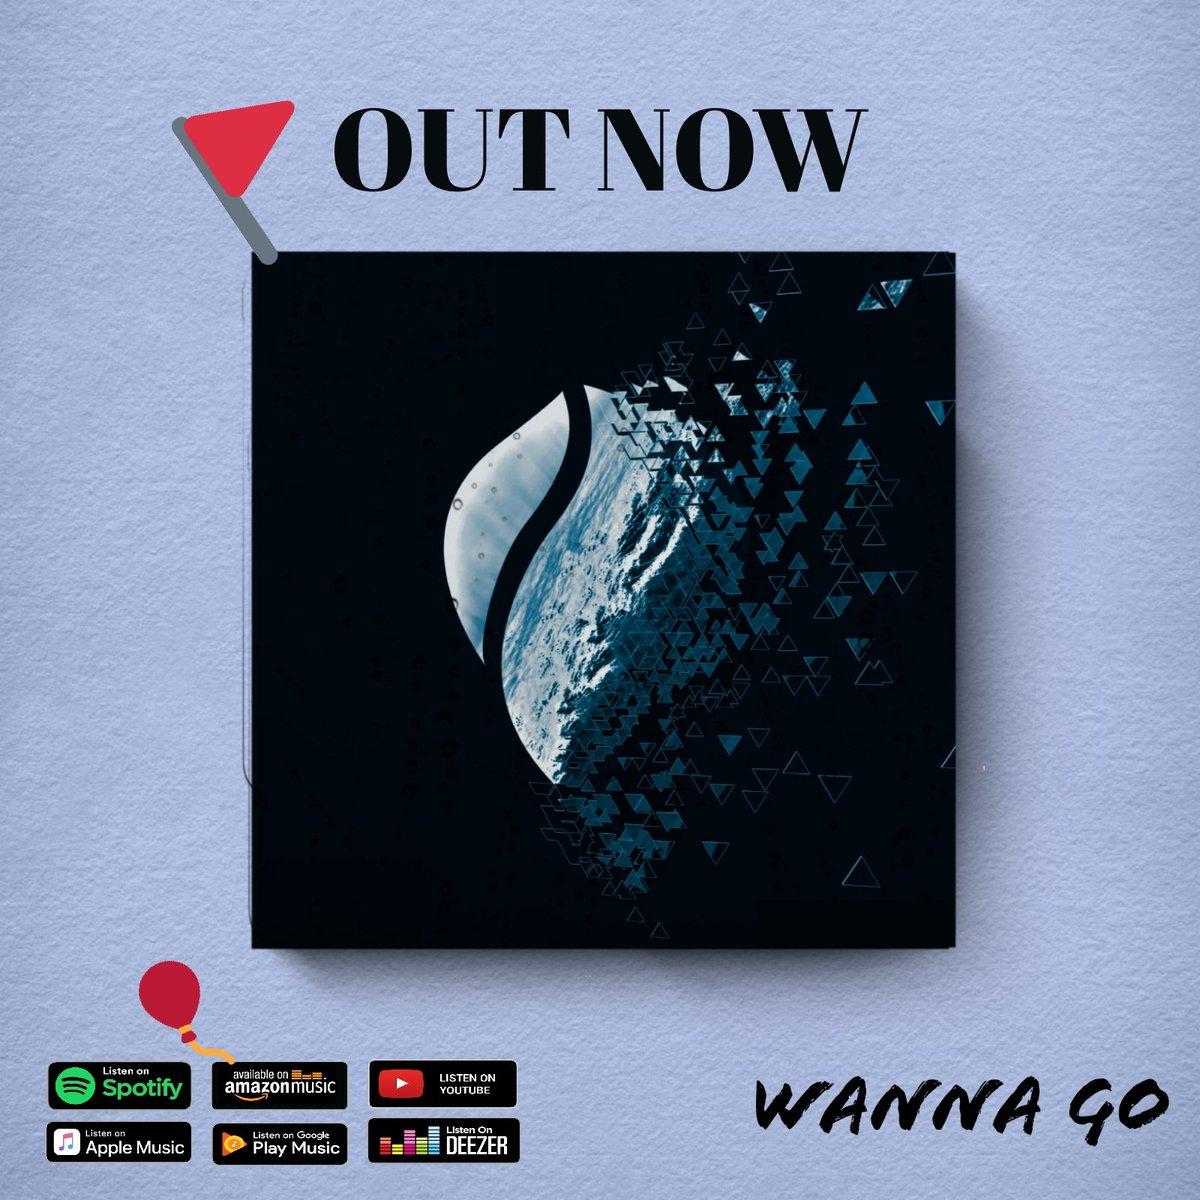 Uh😅 Finally, NEW SONG!🎉 DONT MISS it! AVAILABLE NOW on all major platforms! @AppleMusic @Spotify ..... #MYXMusicAwards2019 #LEEDER #AHYEAH_WINNER #ArianaGrande #music #zayn #HARDANE #Eurovision #IShouldHaveKnownThat